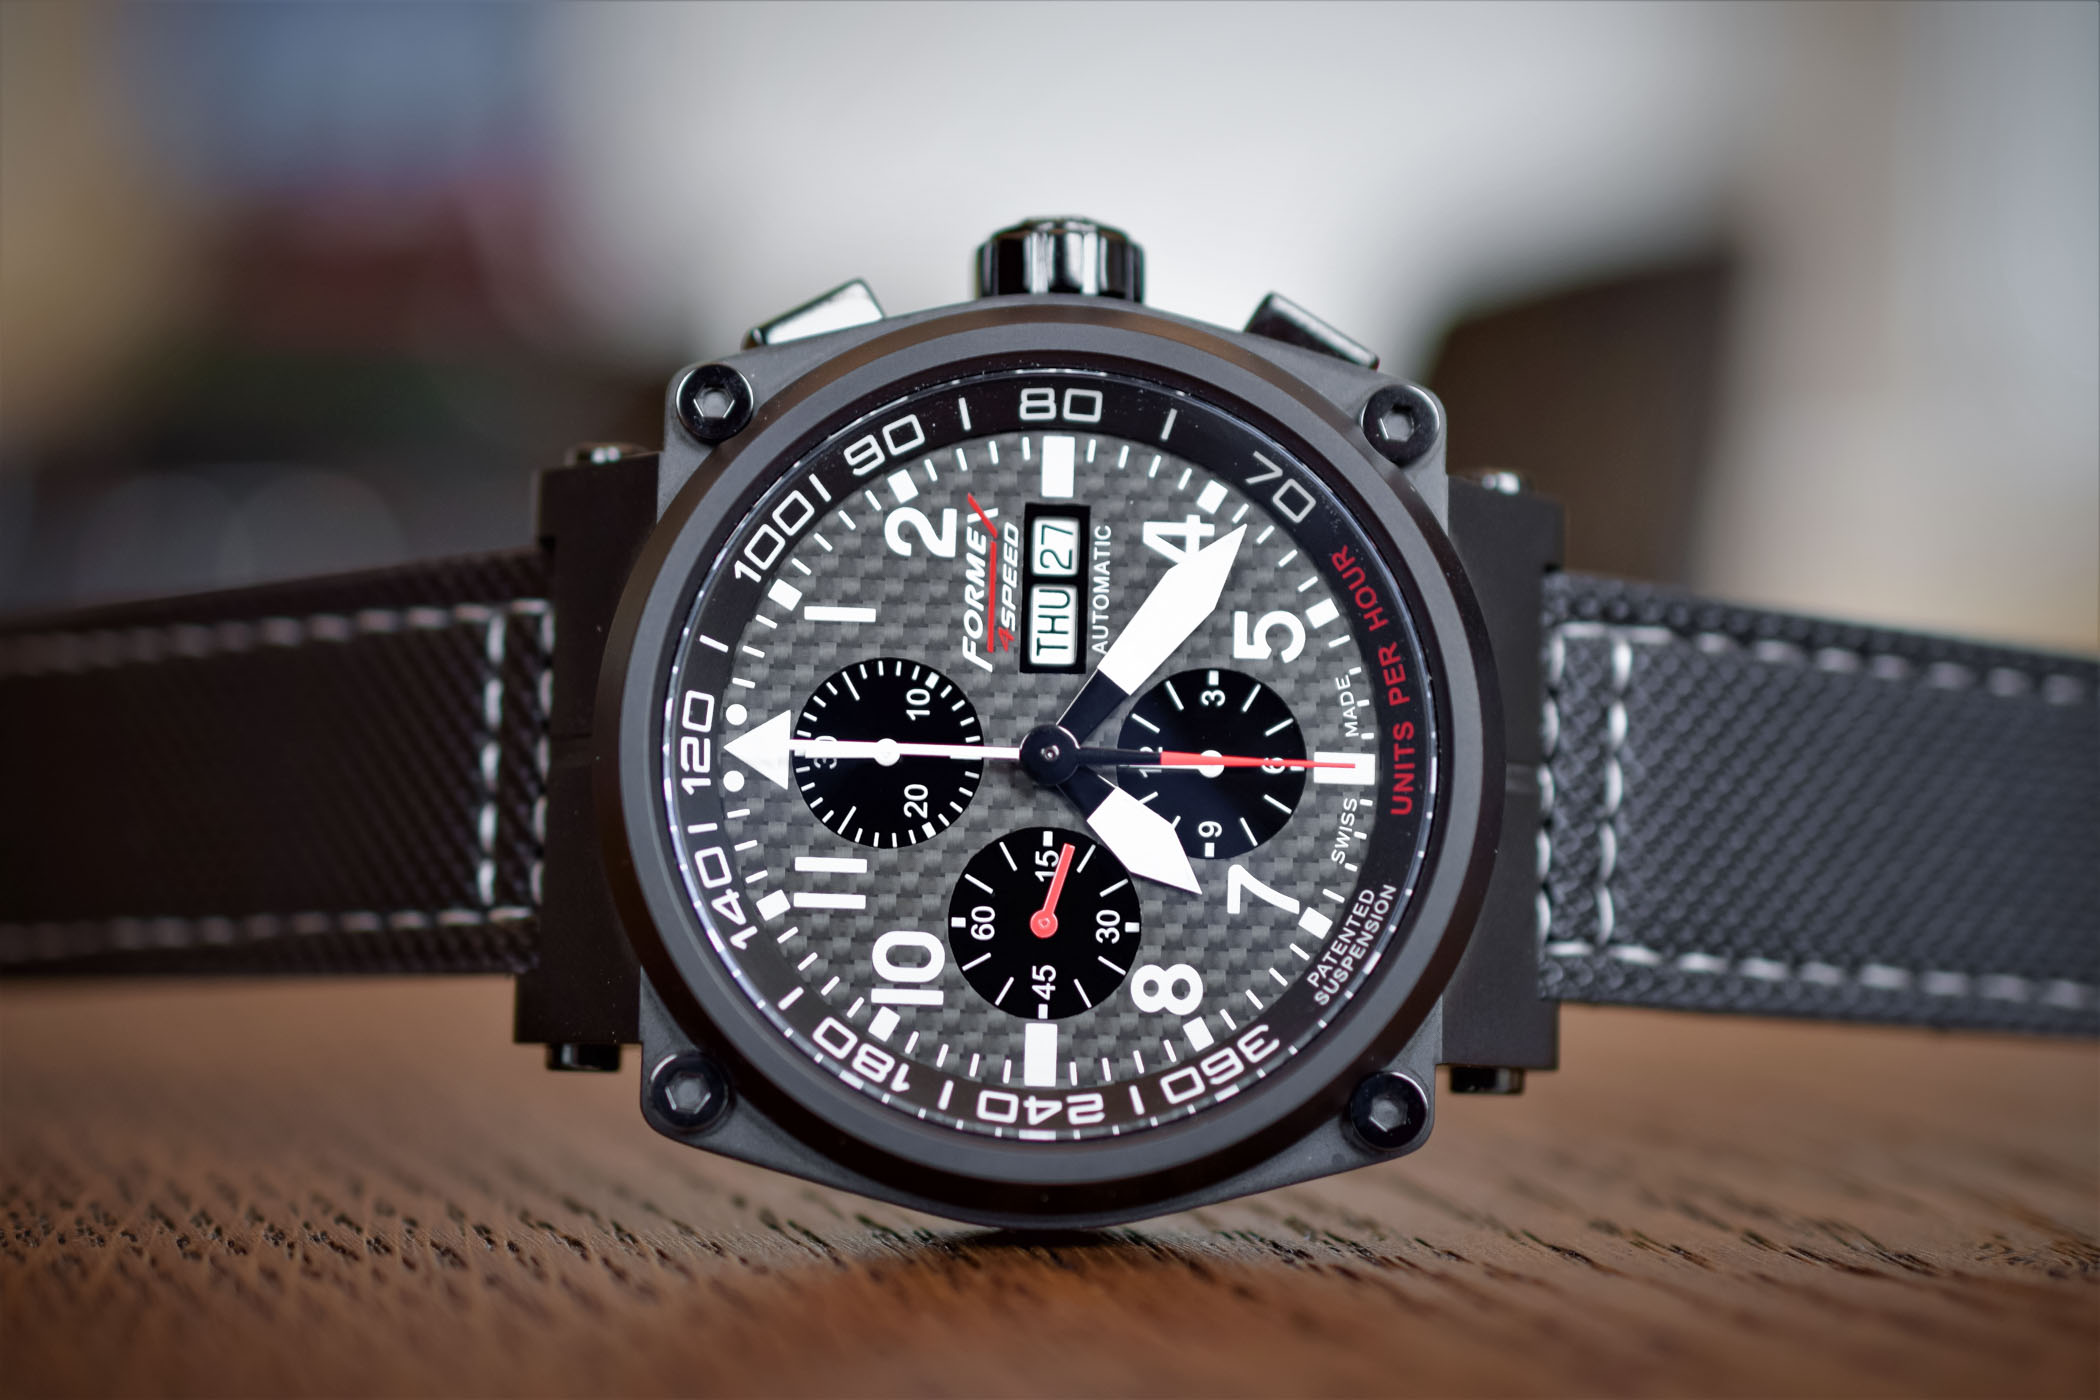 Formex AS1100 Chronograph Carbon